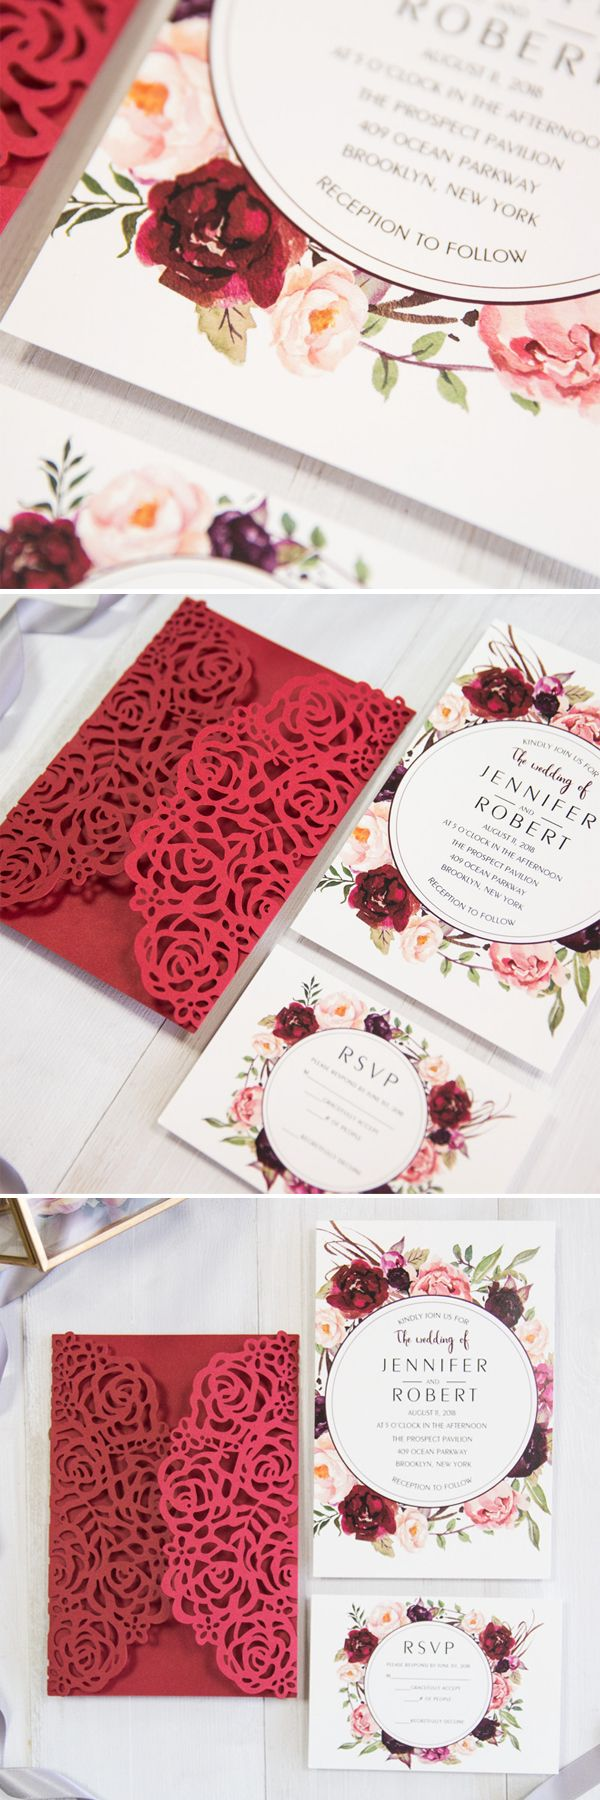 vintage wedding invitation text%0A hot red laser cut wedding invitation with burgundy flower